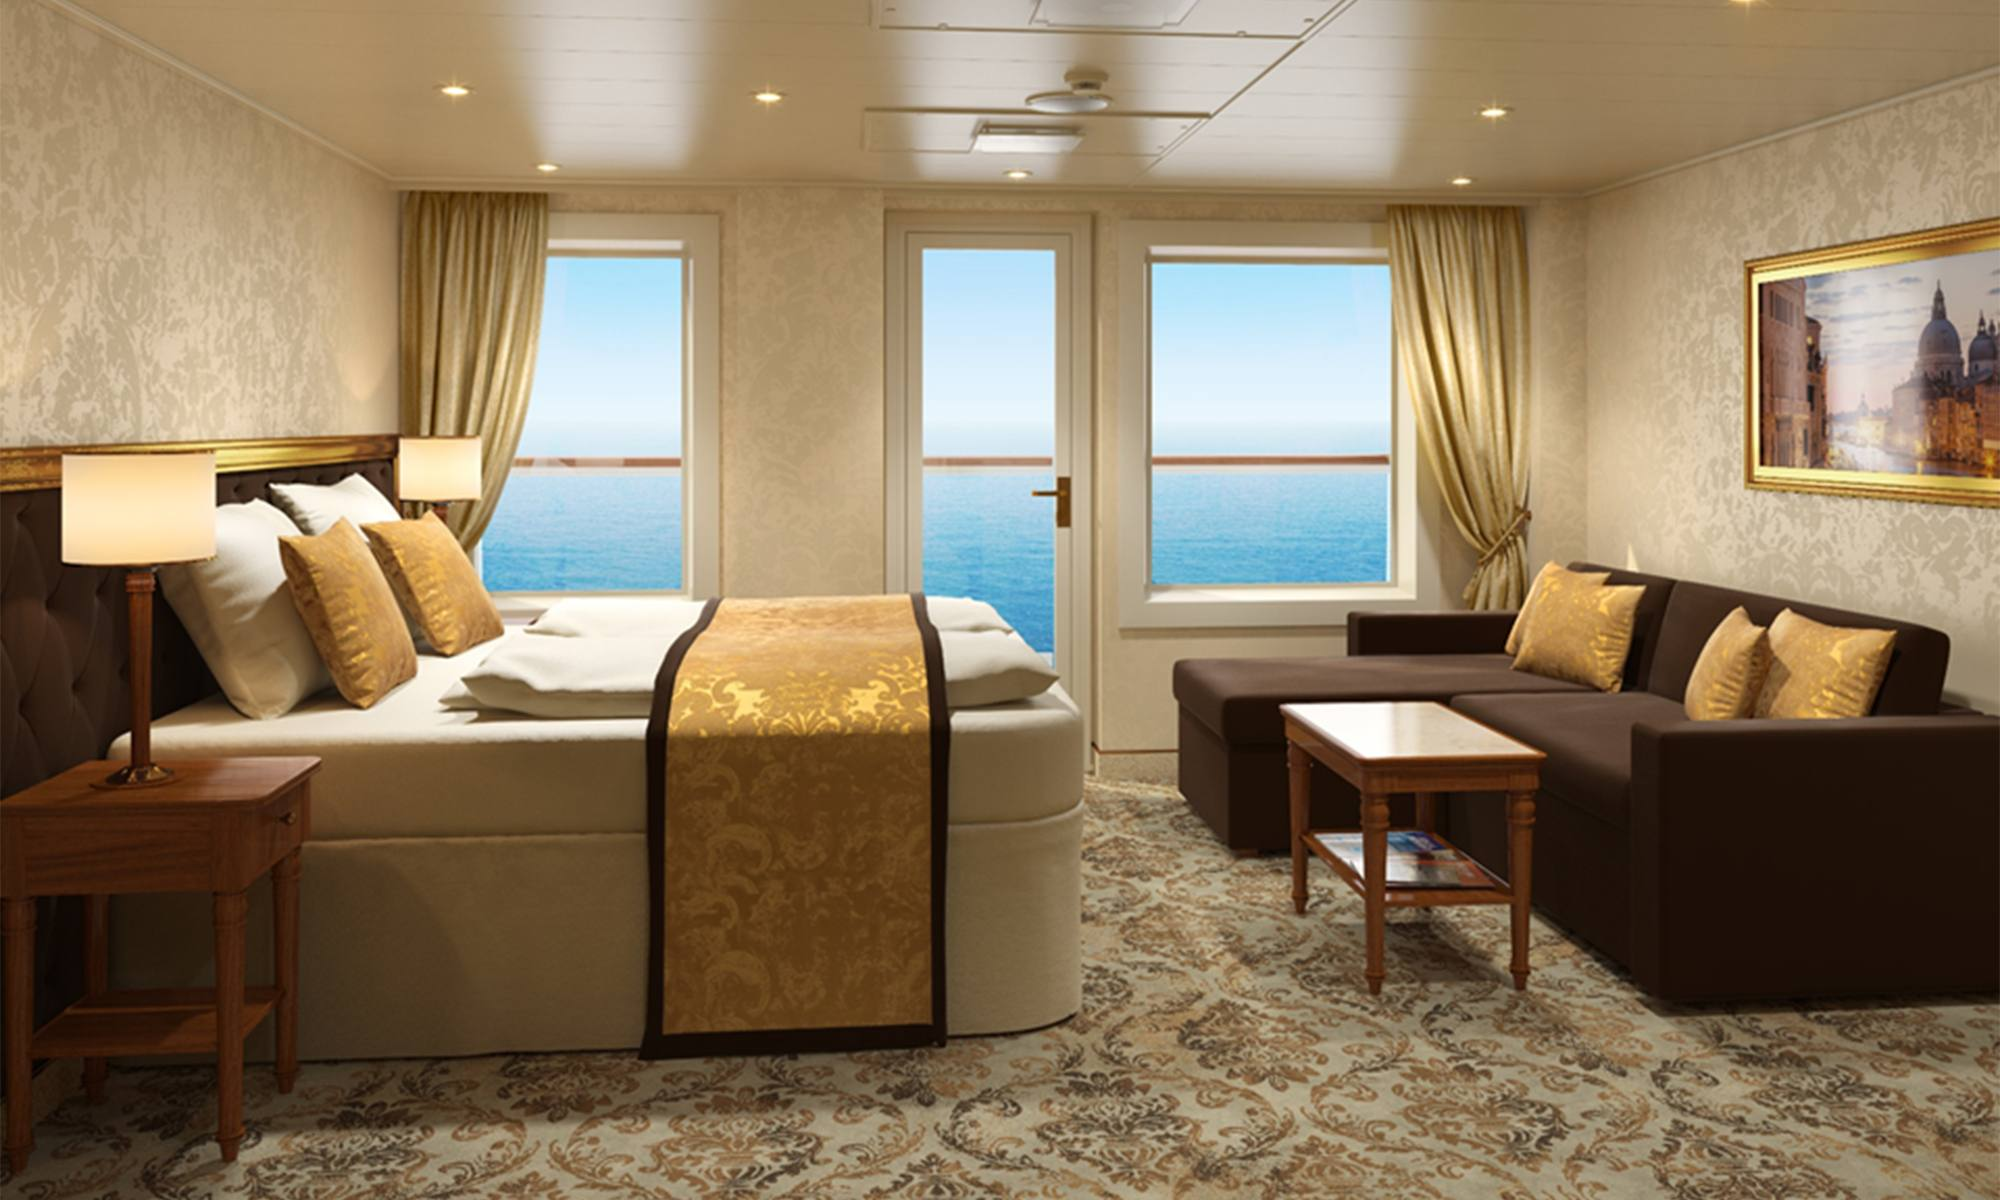 Costa Firenze Cruise Ship 2020 Images Amp Reviews